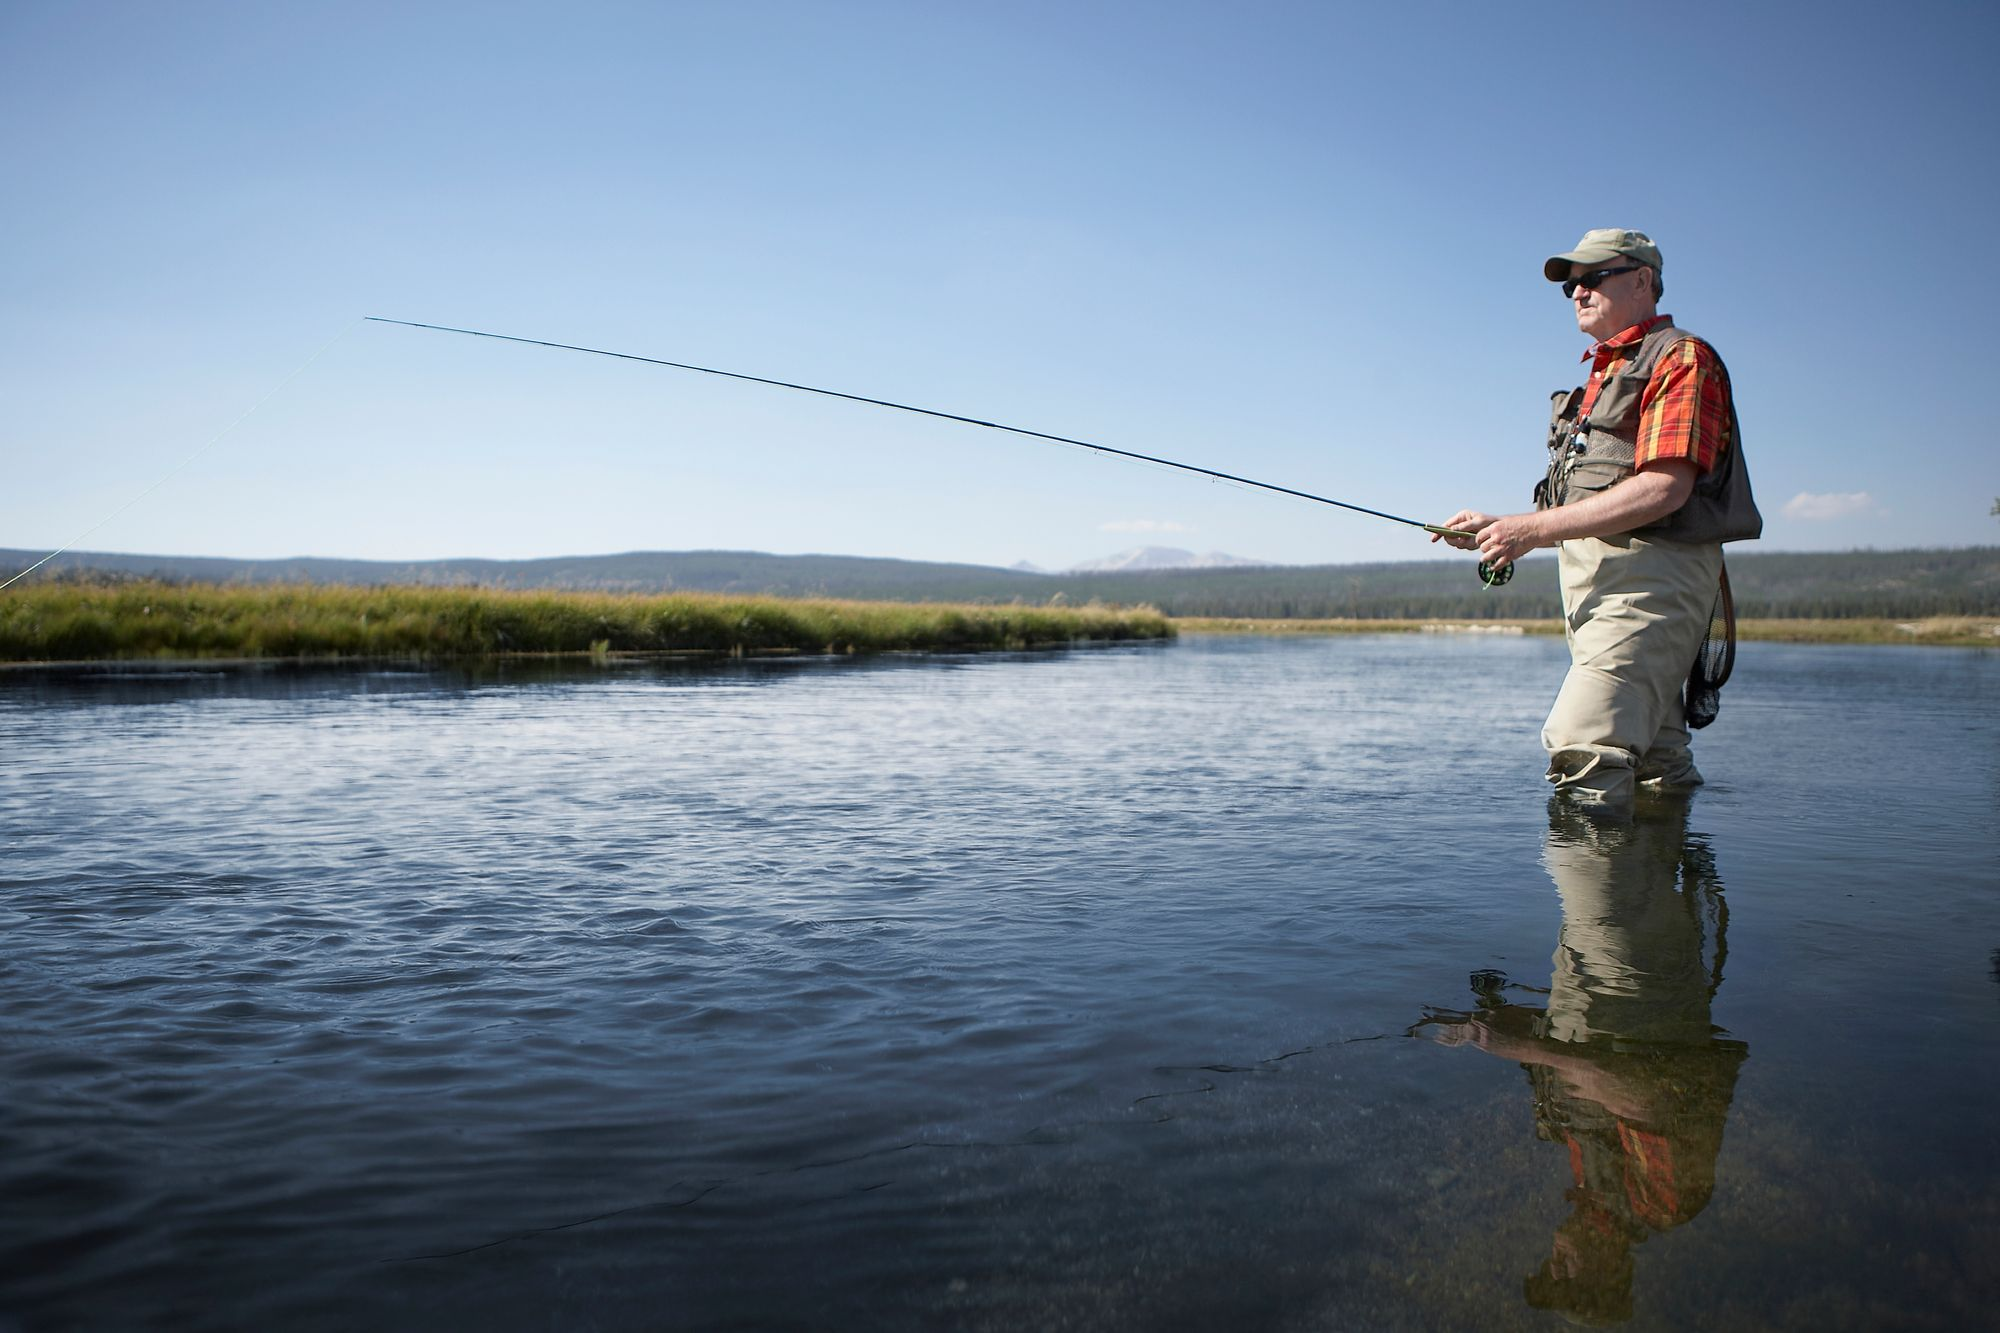 The Best Rivers and Lakes for Fishing in Ireland | Skyscanner